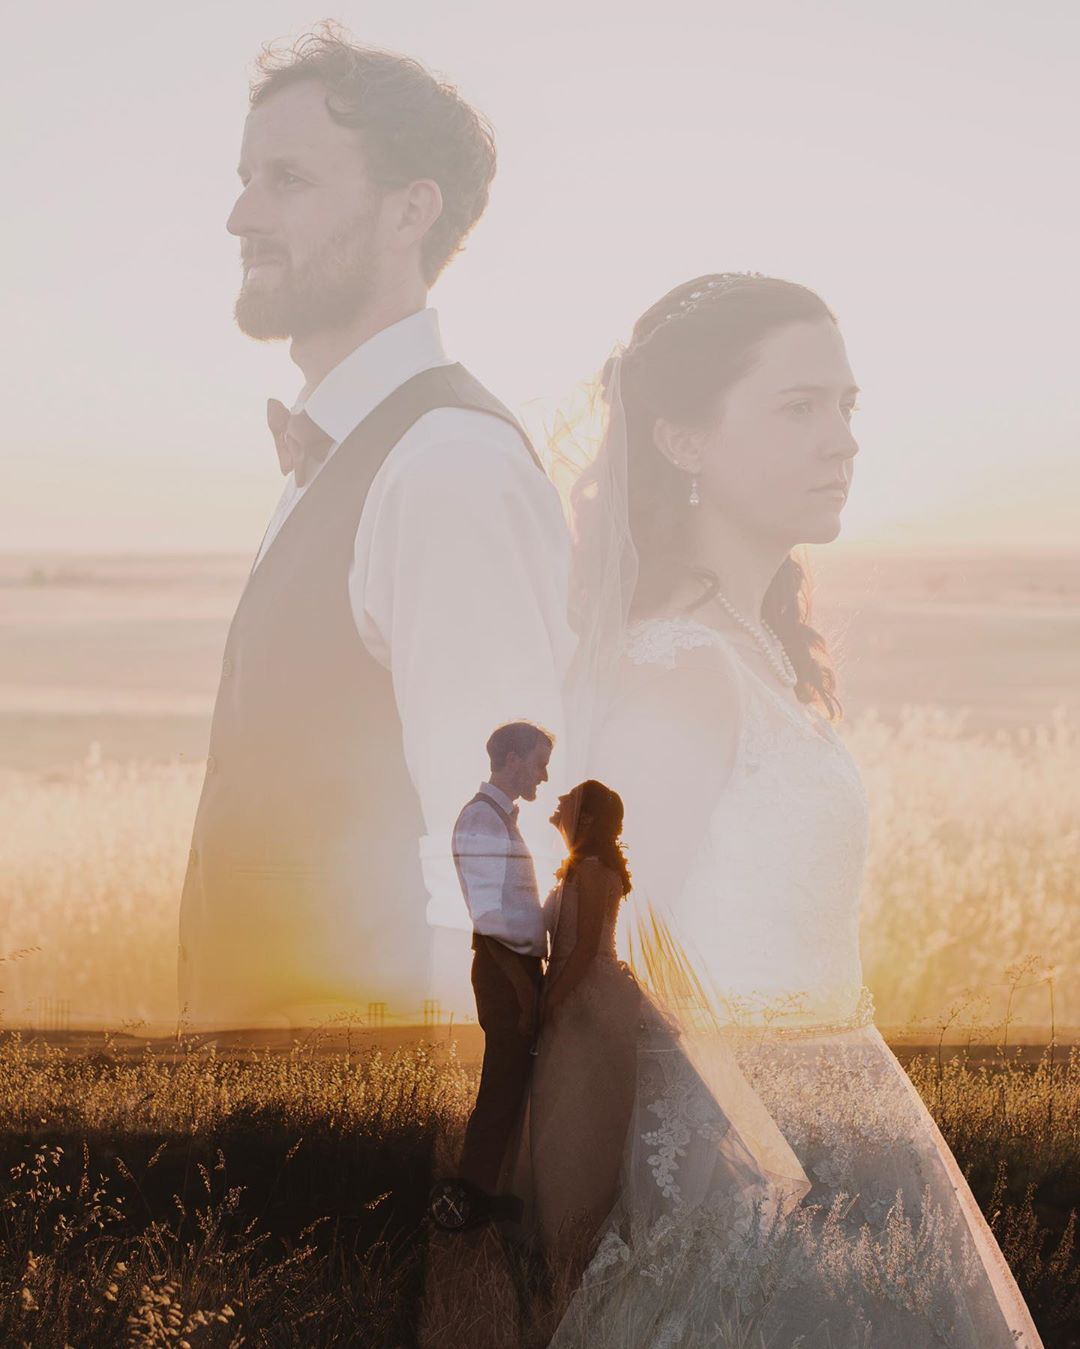 The blend of two images with the double exposure technique of the bride and groom in a farm